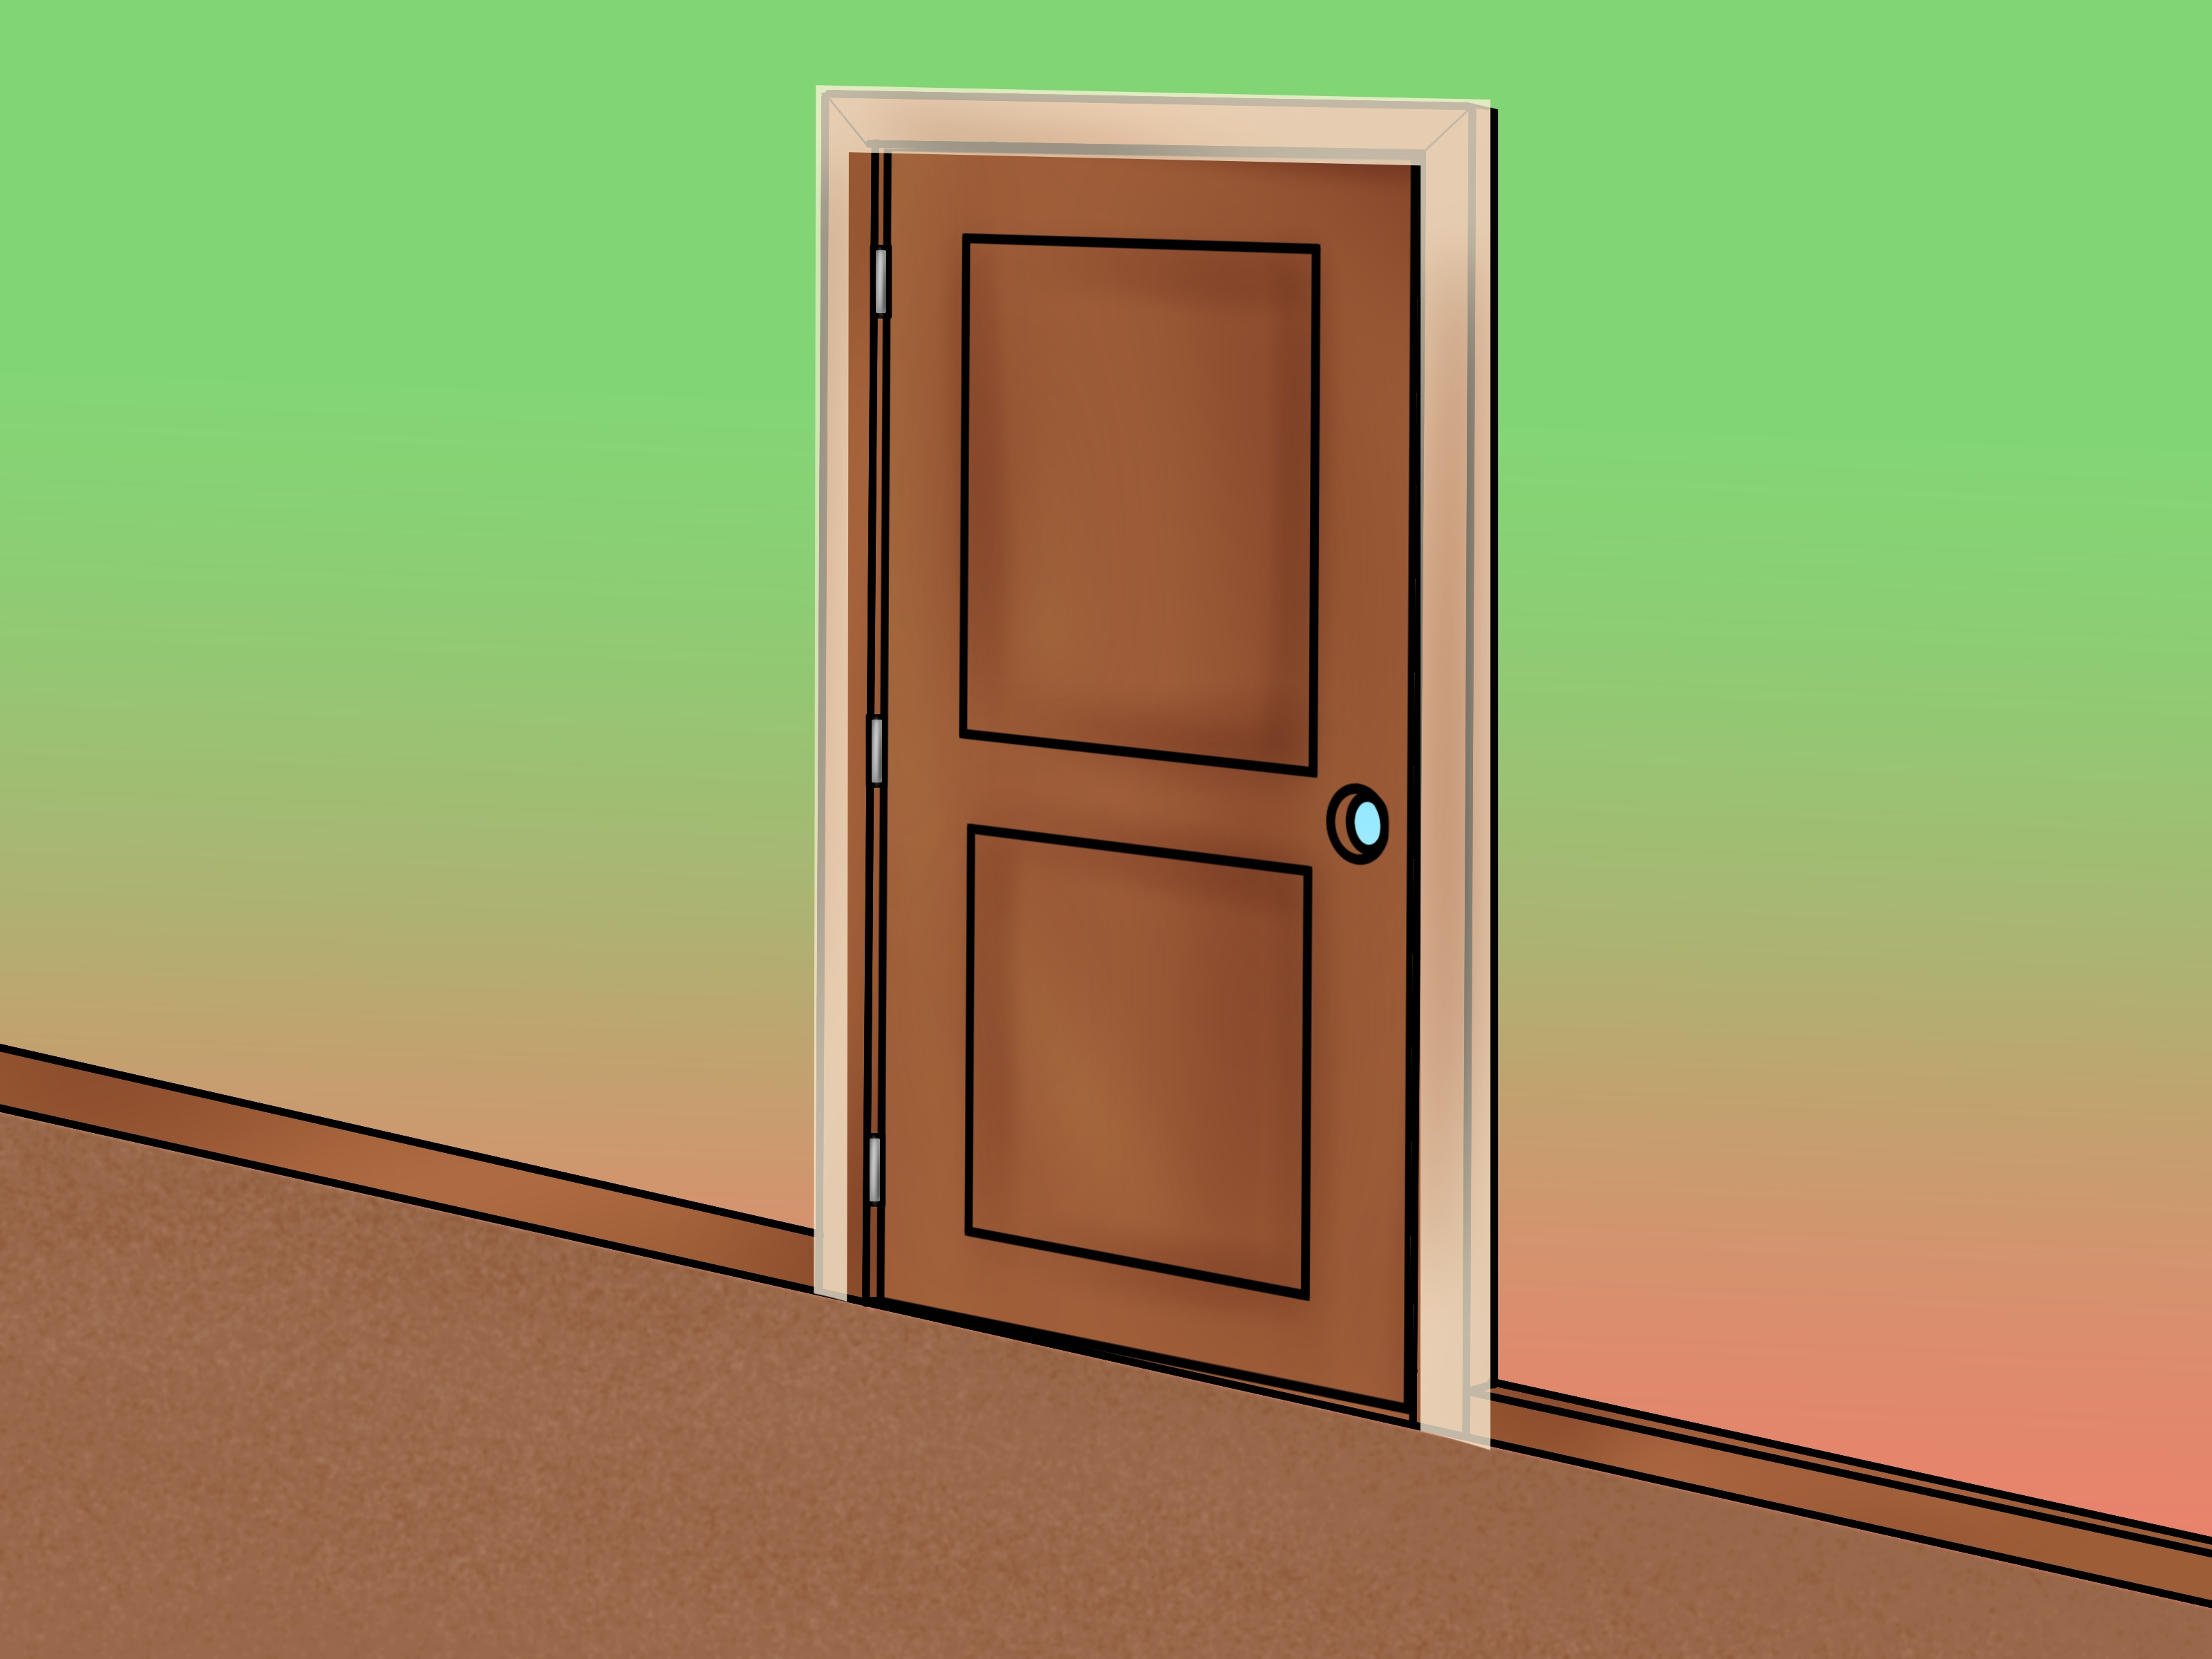 Le Meilleur How To Install An Exterior Door 14 Steps With Pictures Ce Mois Ci